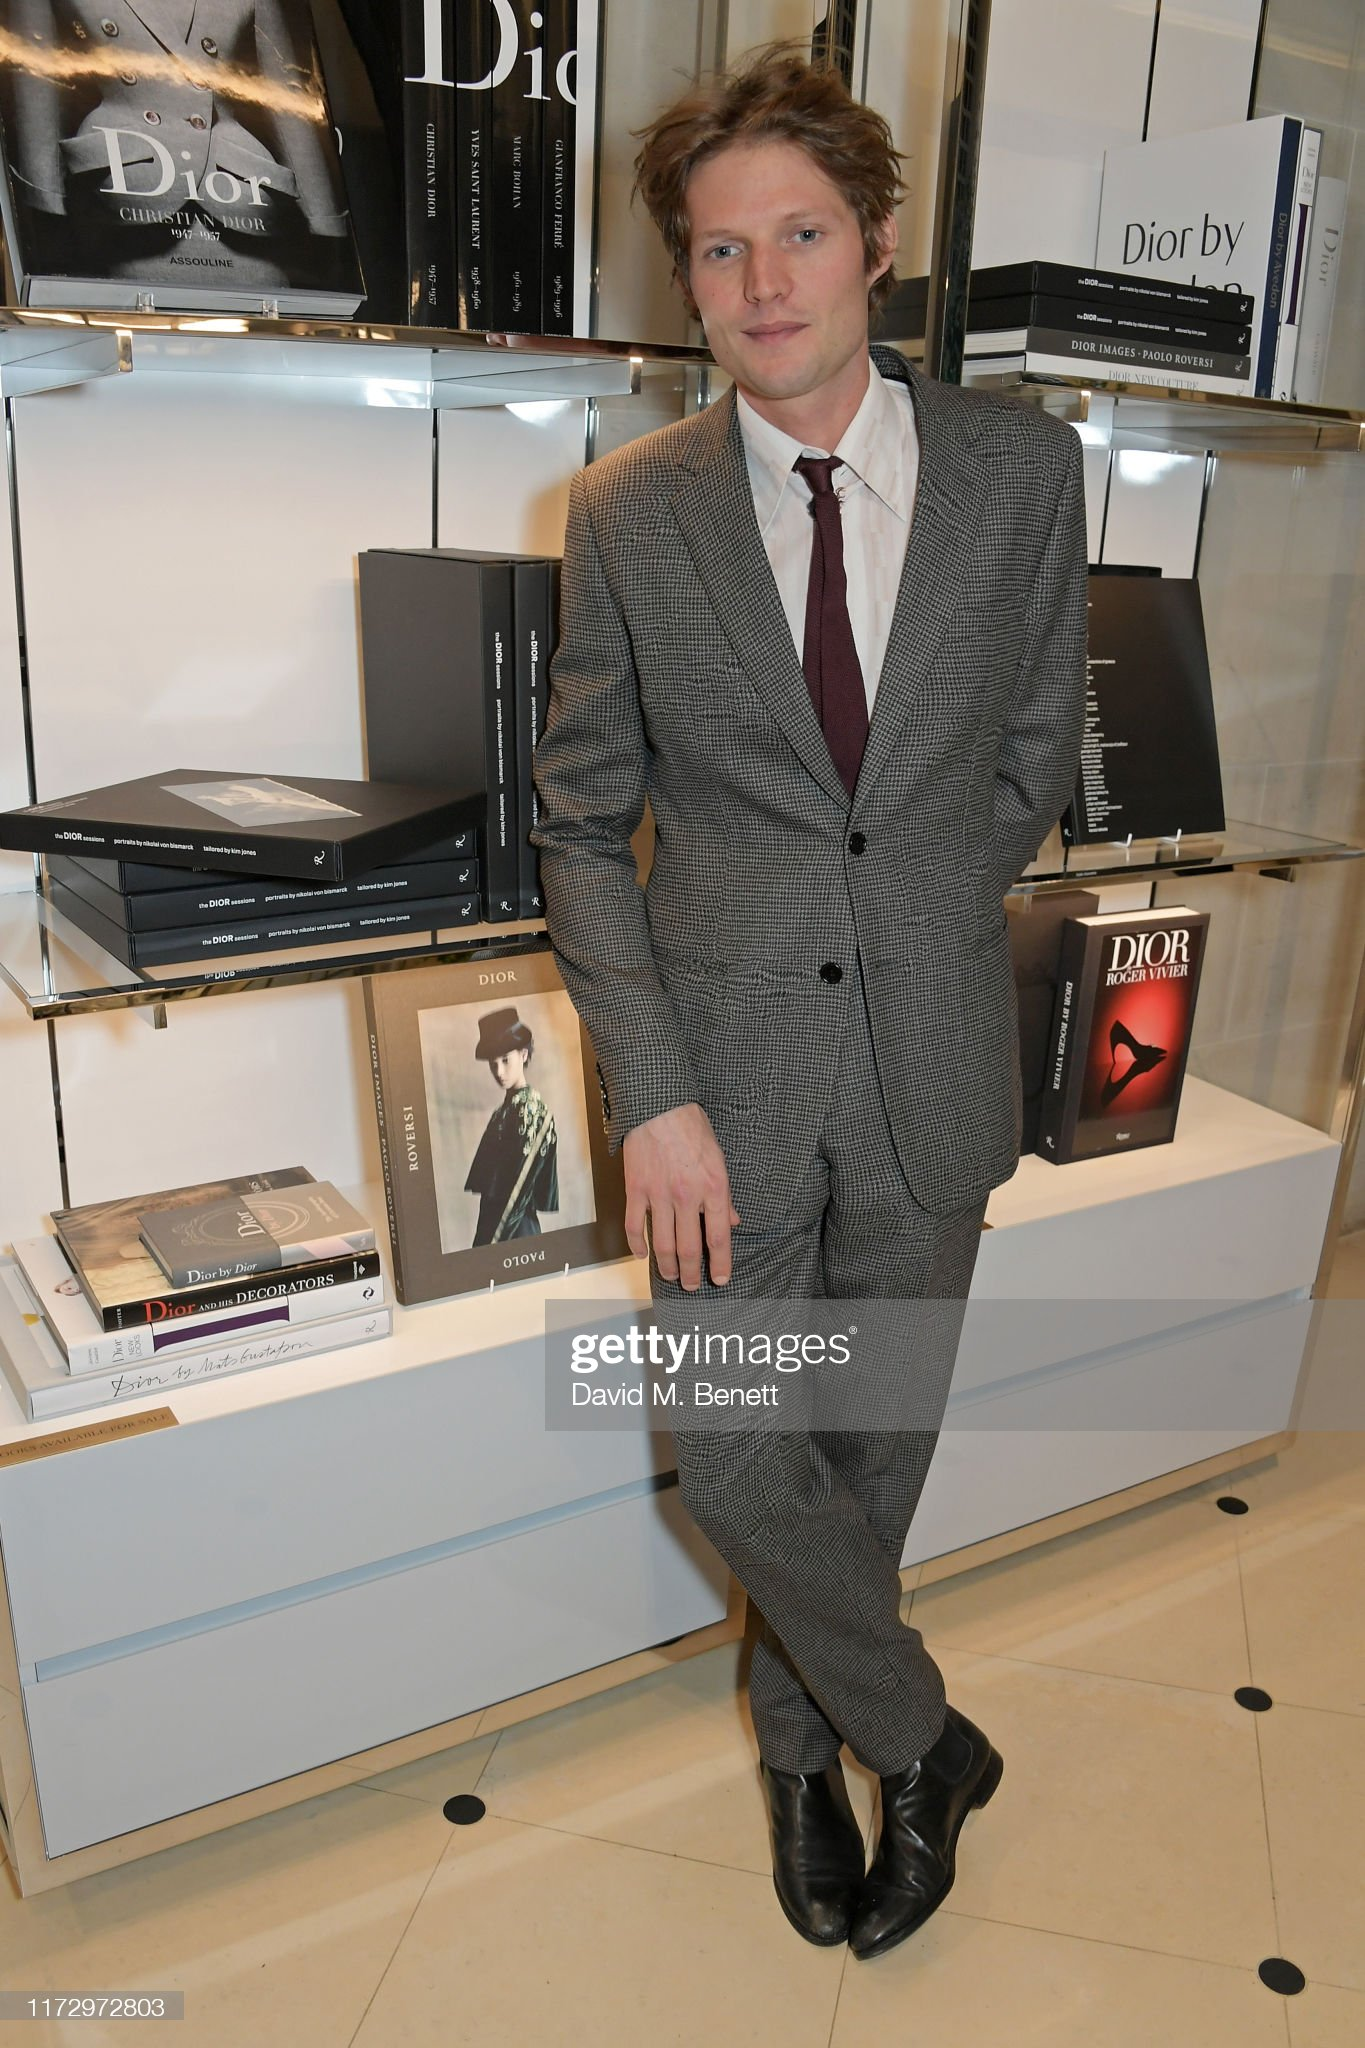 https://media.gettyimages.com/photos/nikolai-von-bismarck-attends-the-dior-sessions-book-launch-on-october-picture-id1172972803?s=2048x2048